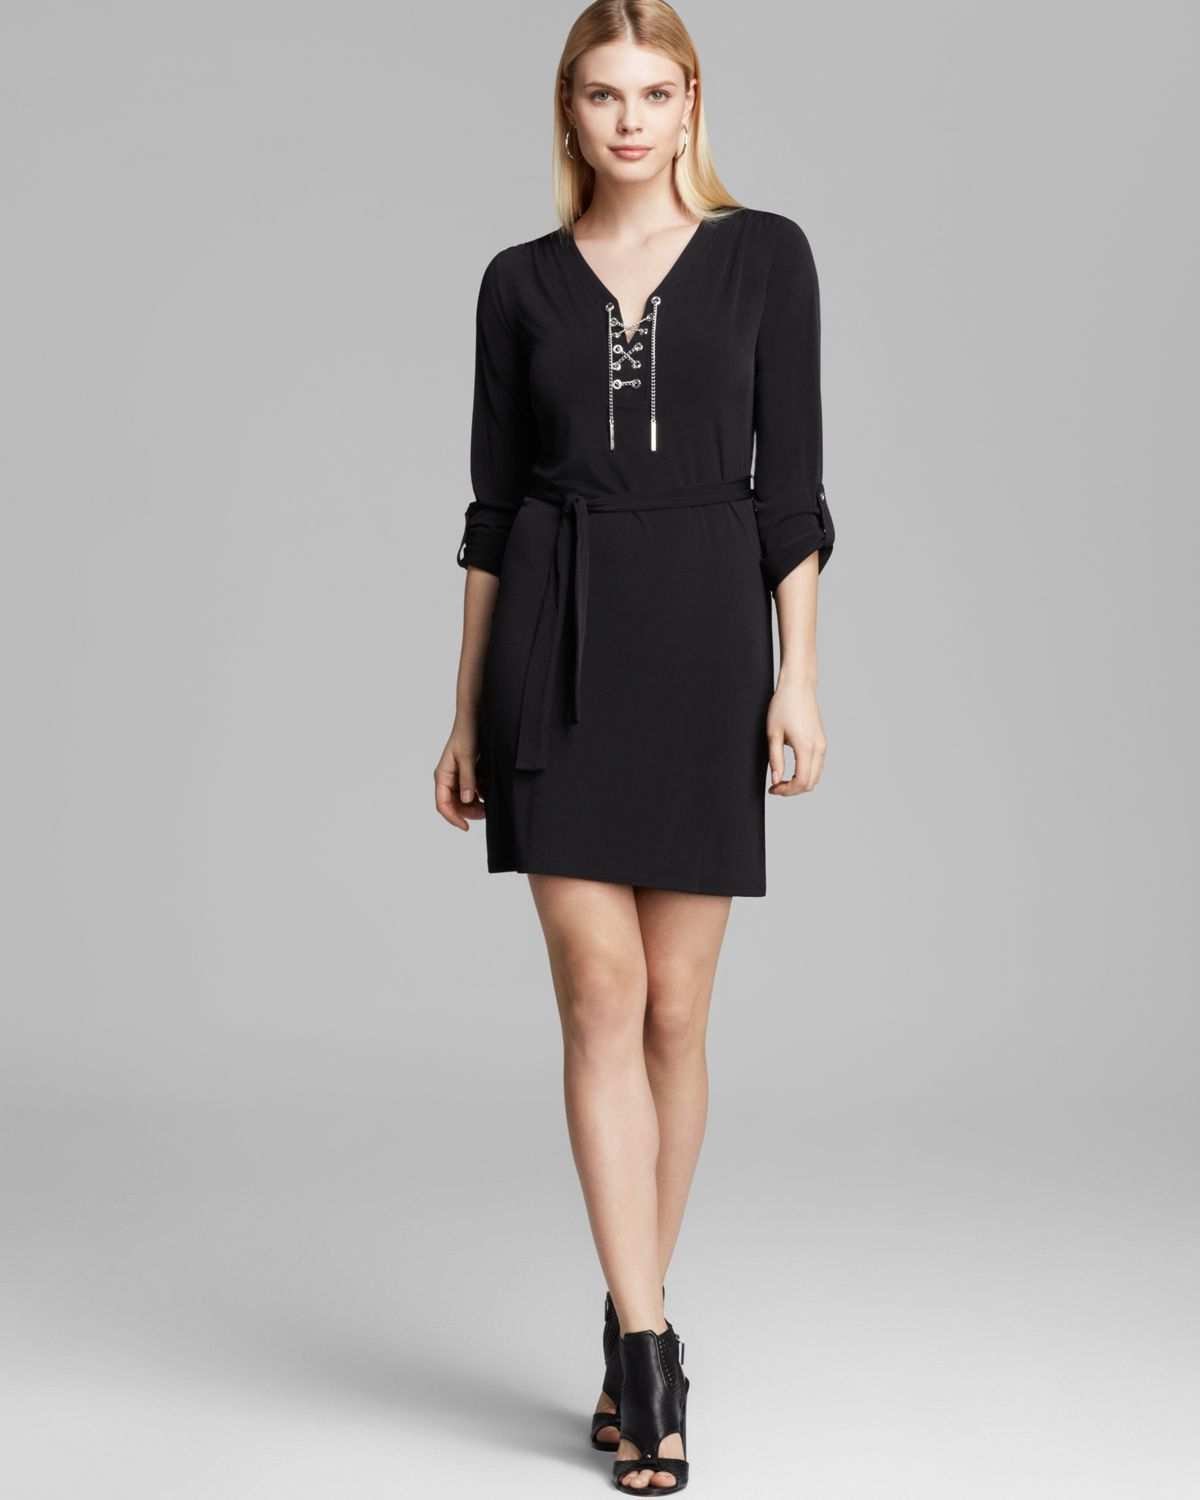 Lyst - Michael Michael Kors Chain Lace Up Dress in Black